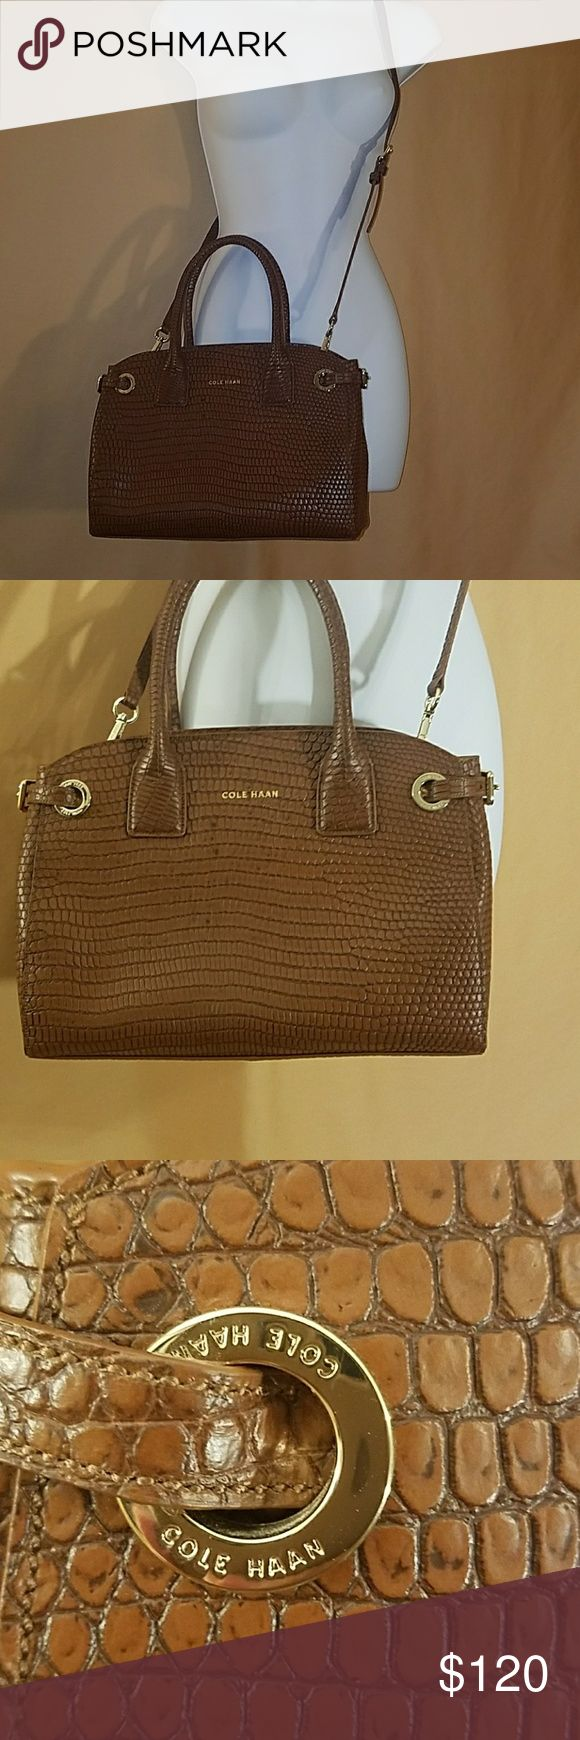 Cole Haan purse Beautiful camel colored bag with structure and gold hardware. Used once. Cole Haan Bags Satchels